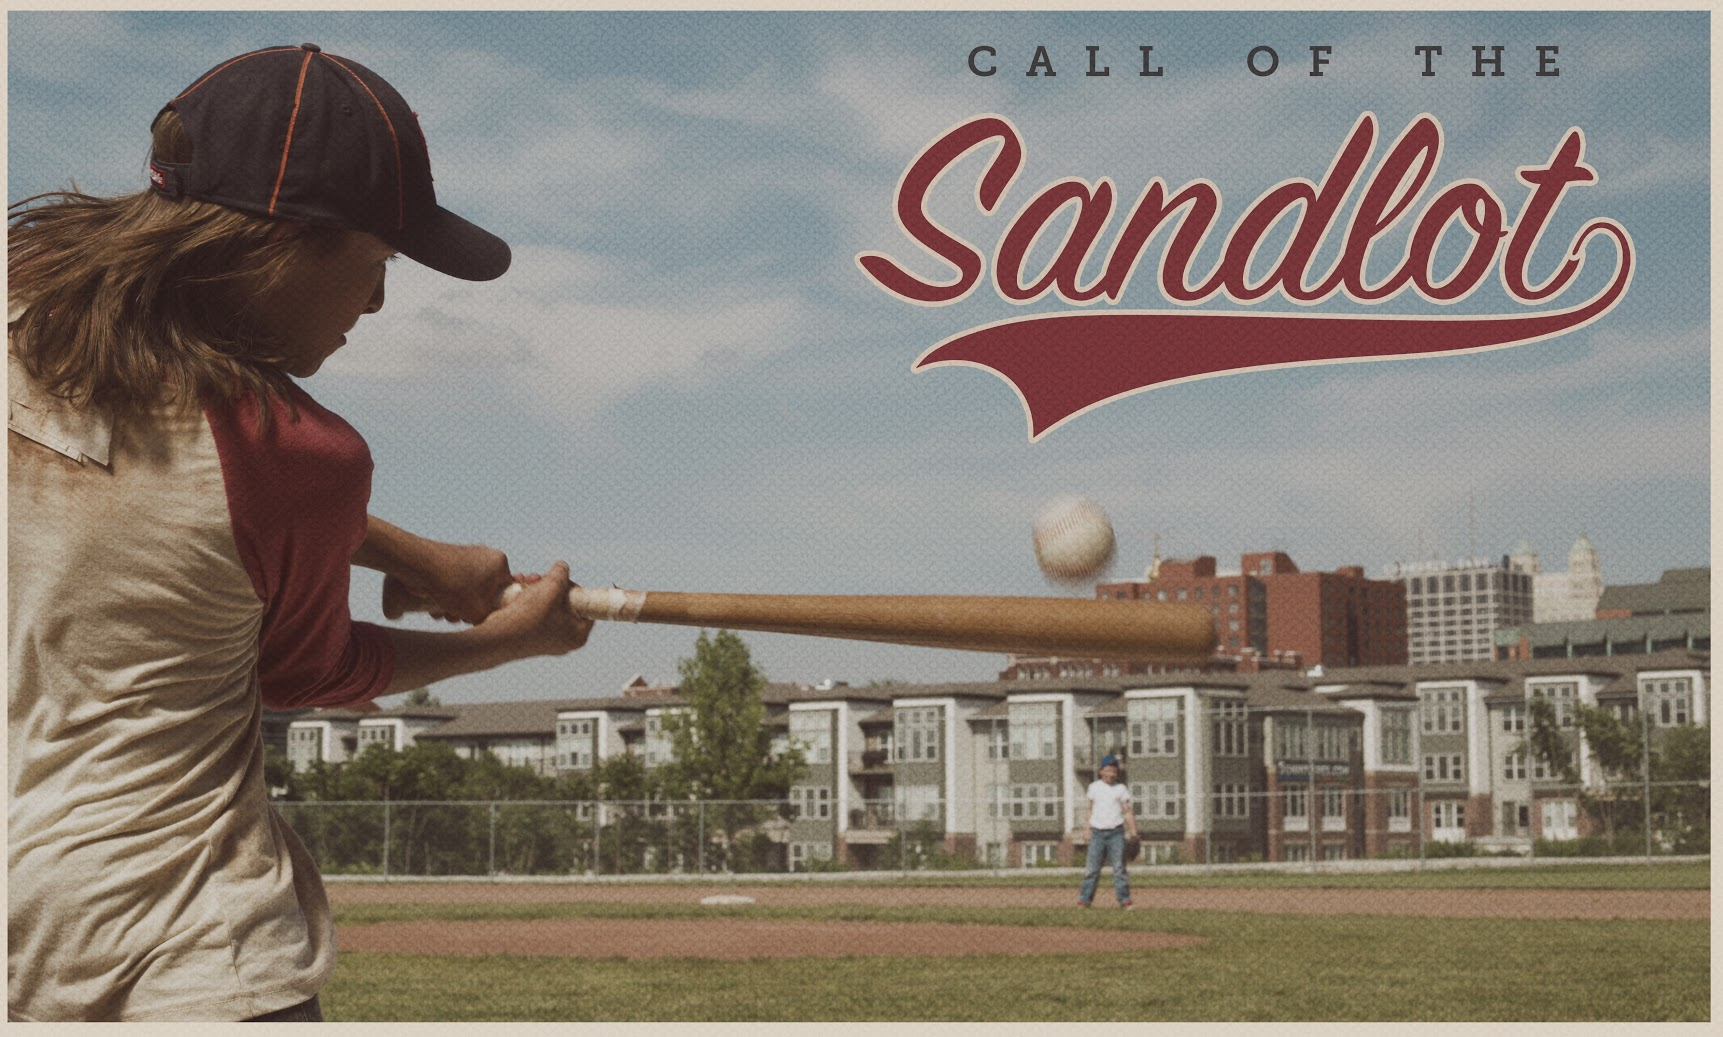 Call of the Sandlot